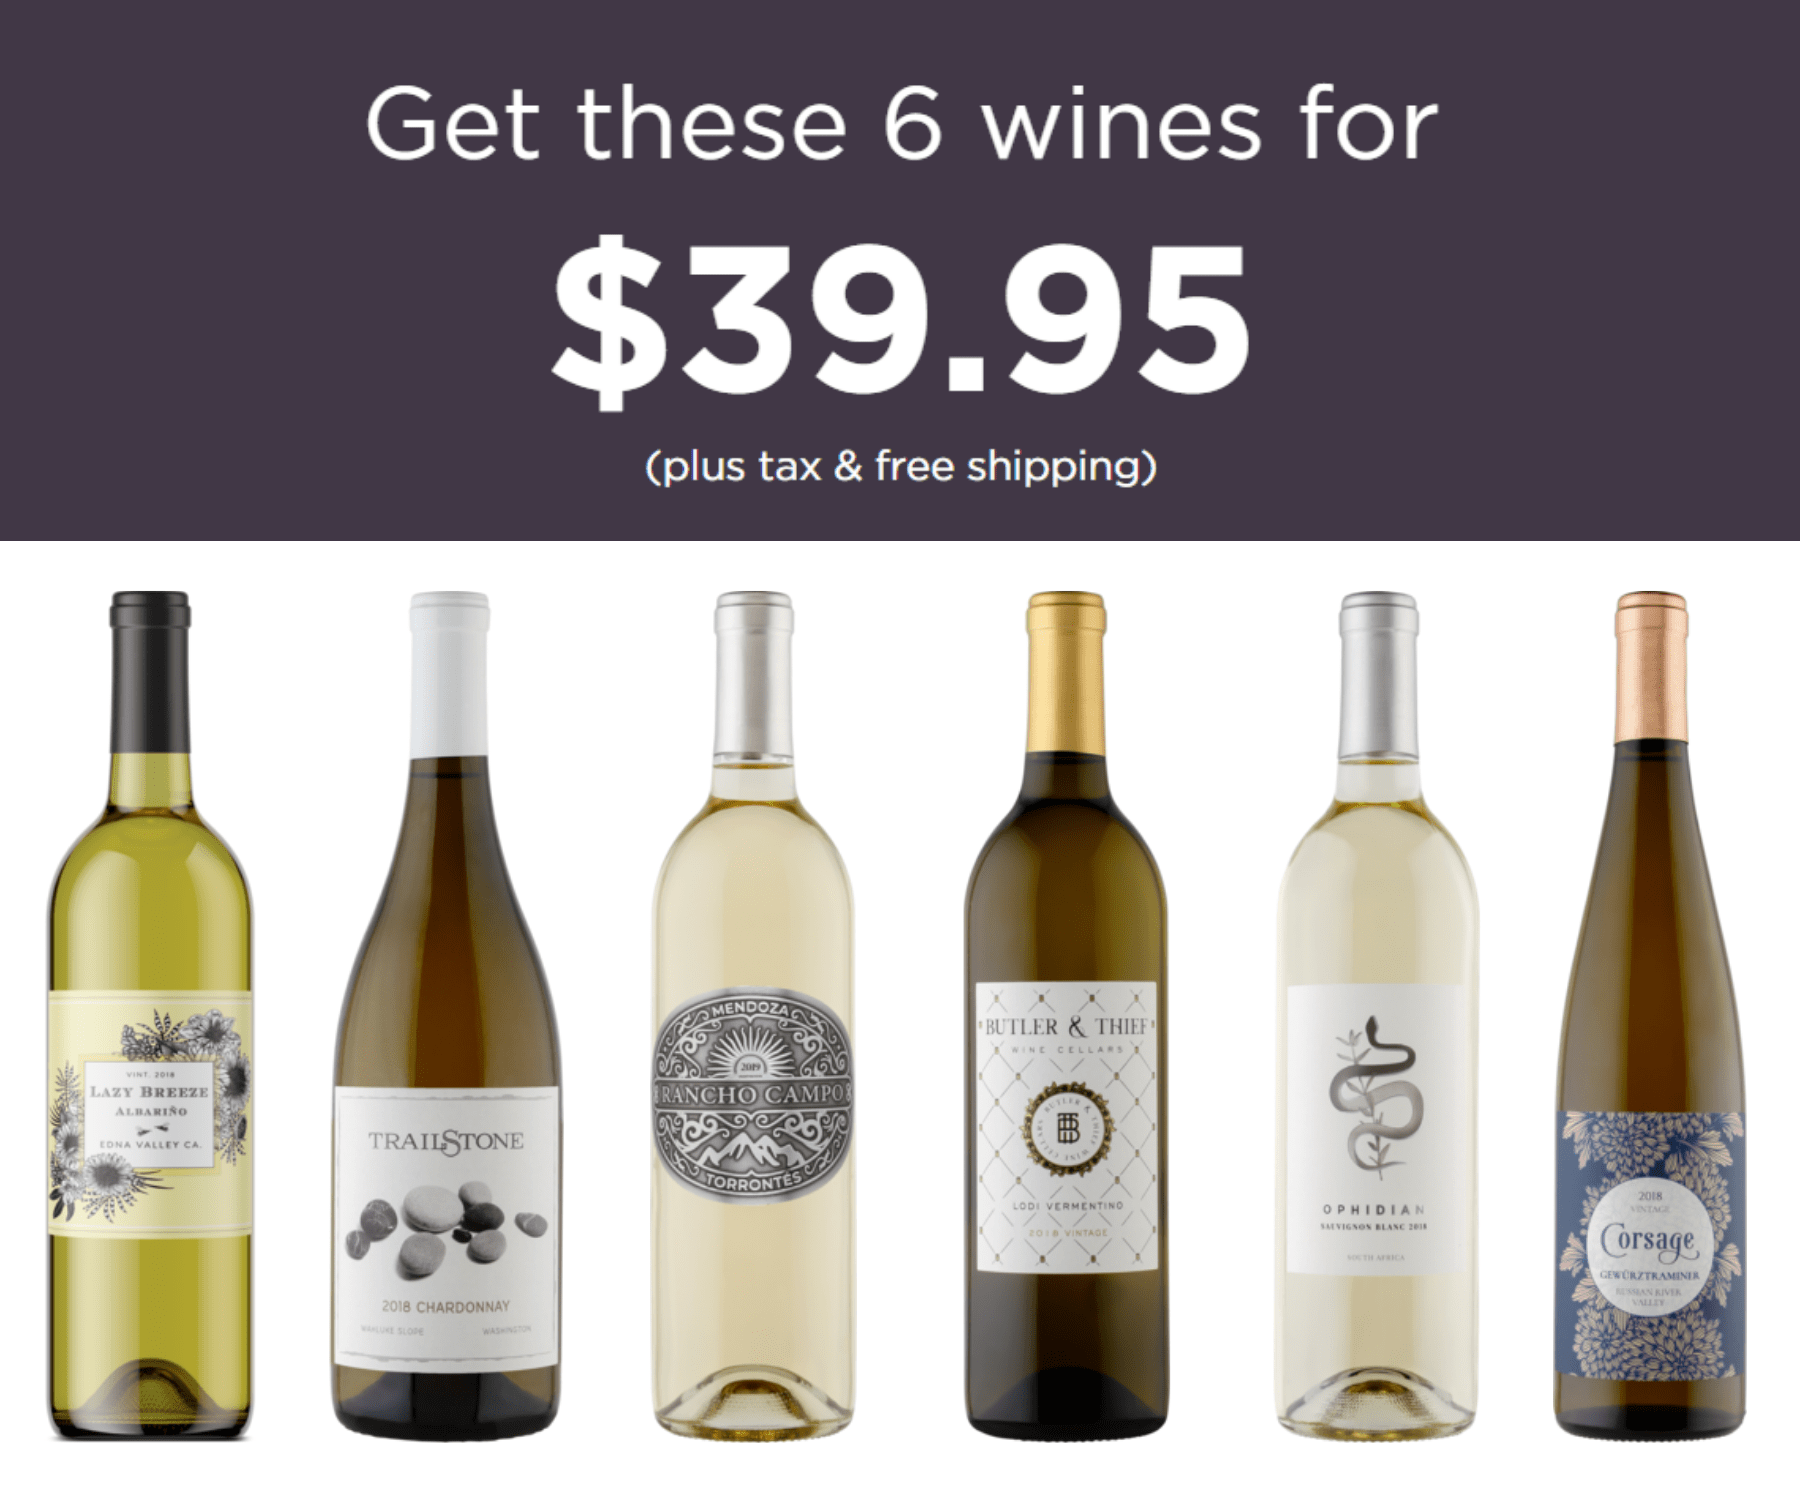 Firstleaf Wine Club Coupon: Get New World White Wine Bundle For Just $39.95 + FREE Shipping!